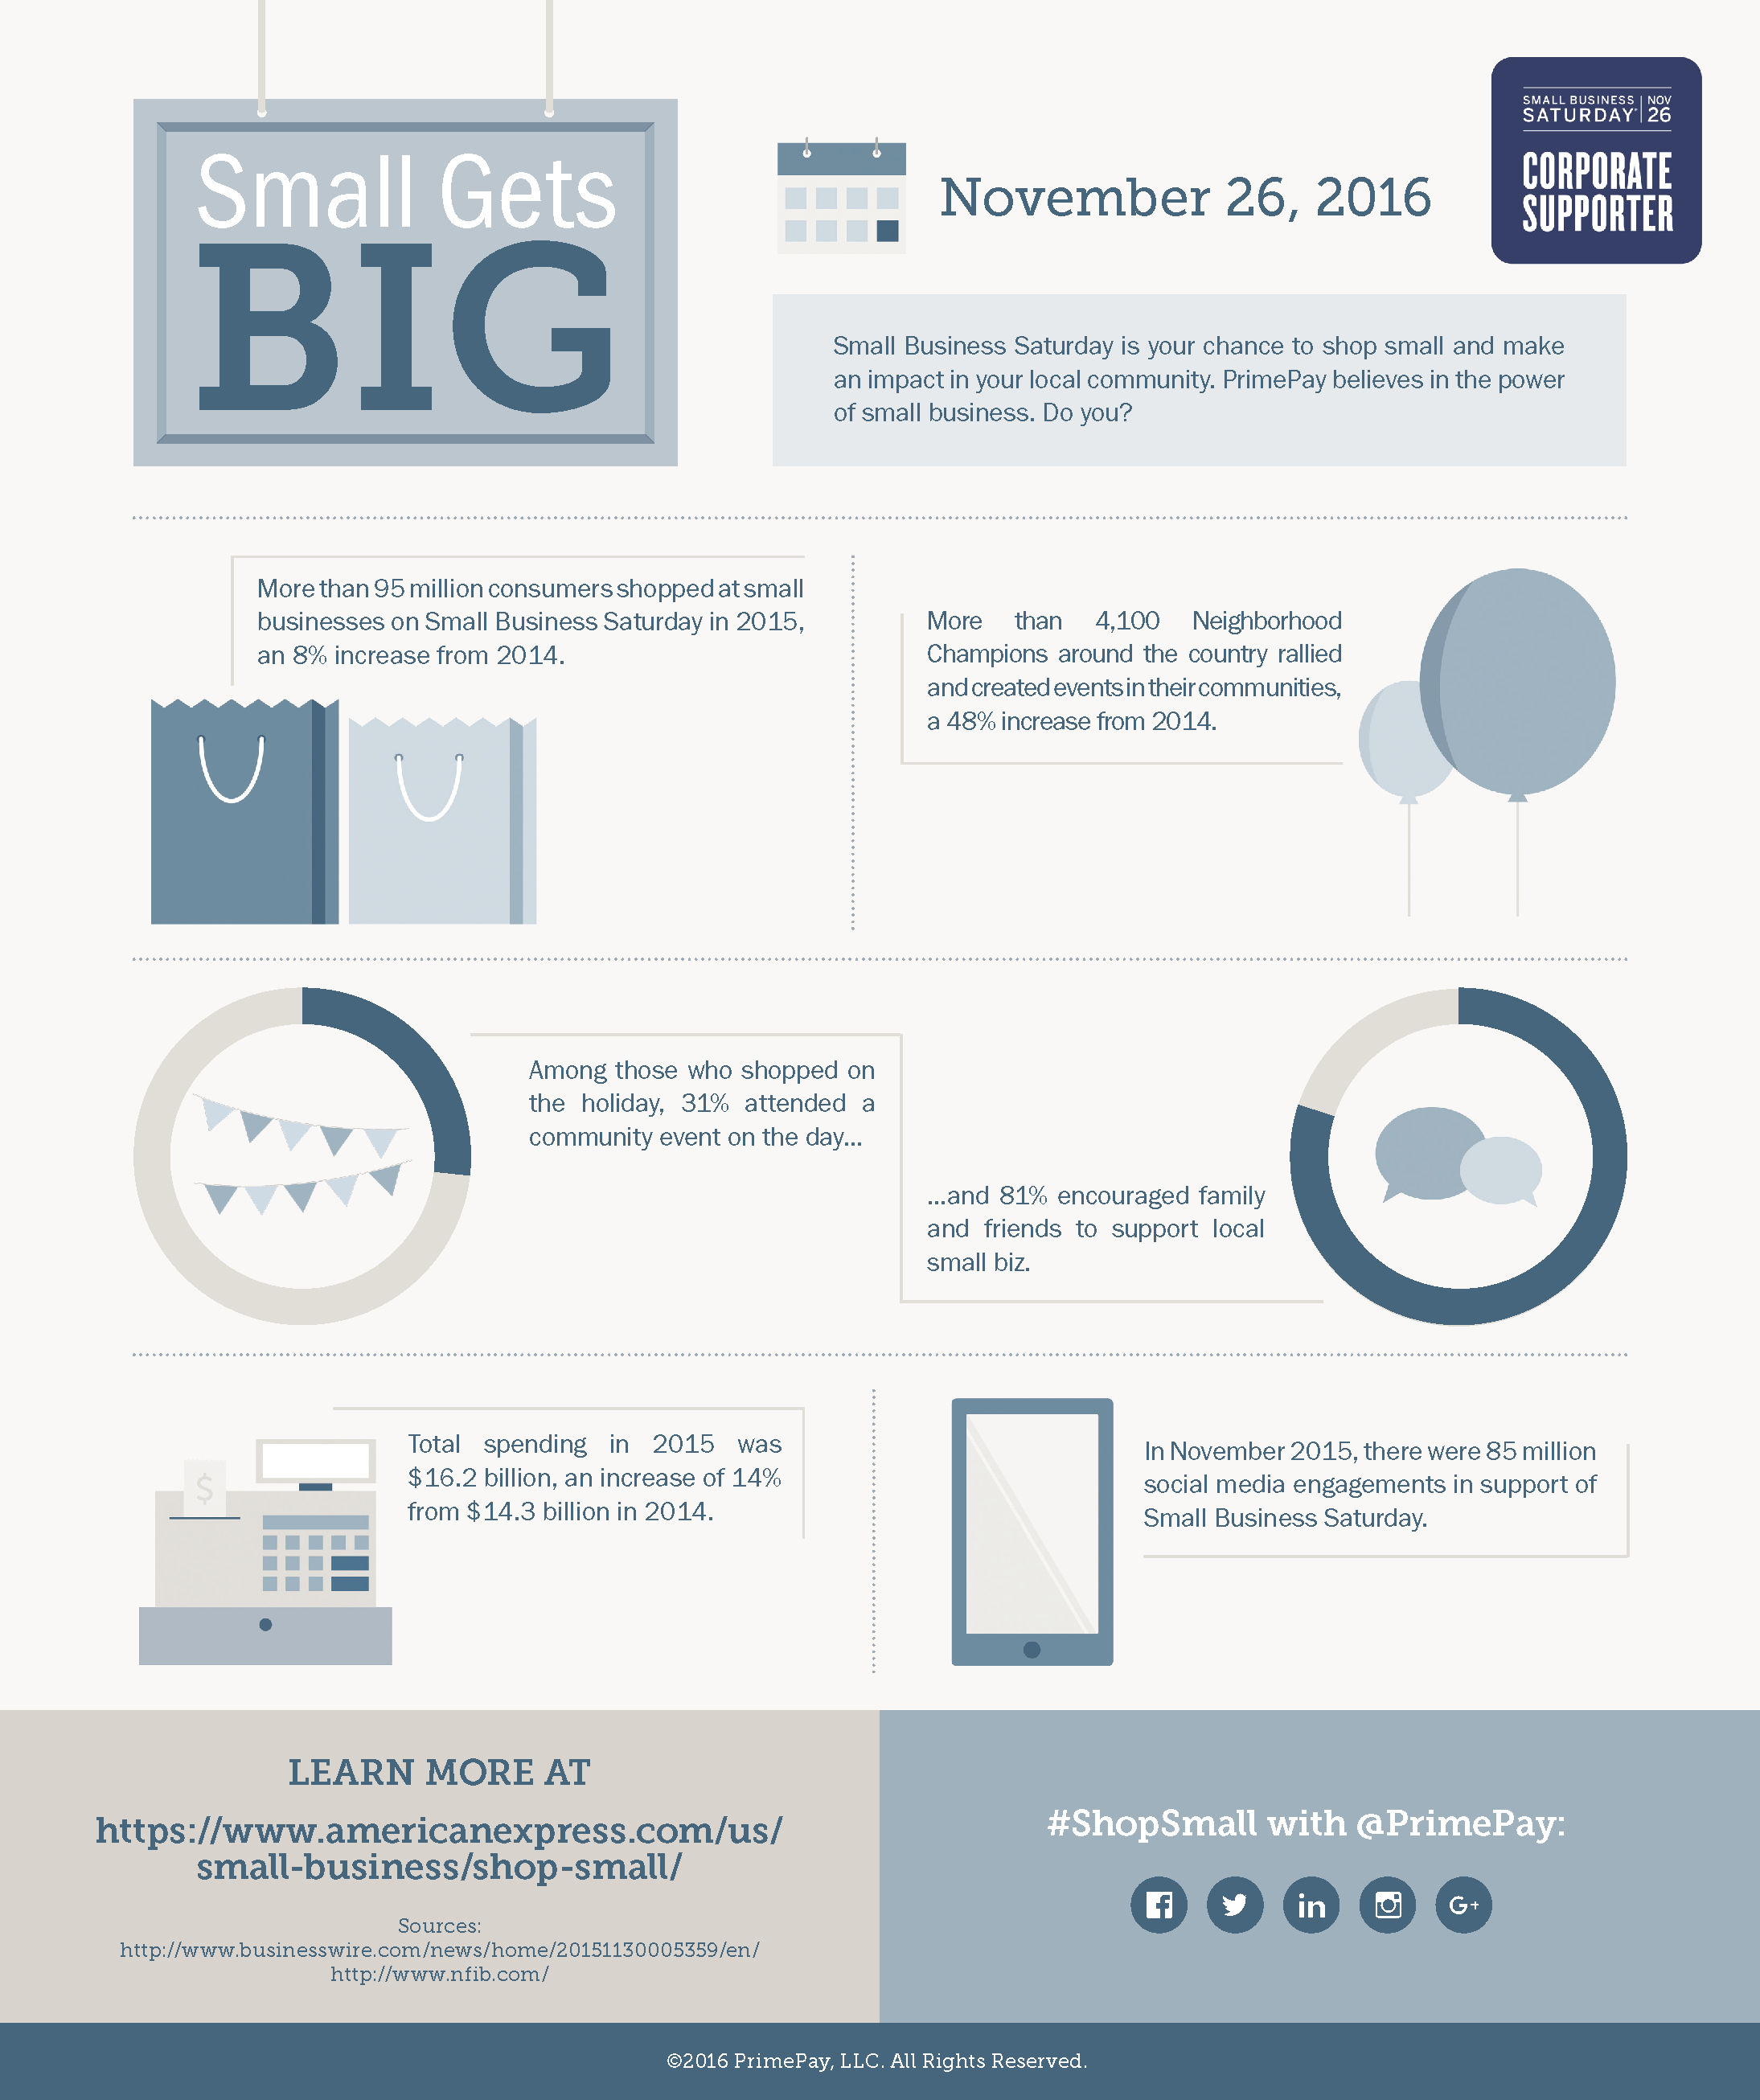 Small Business Saturday: Small Gets Big [Infographic]